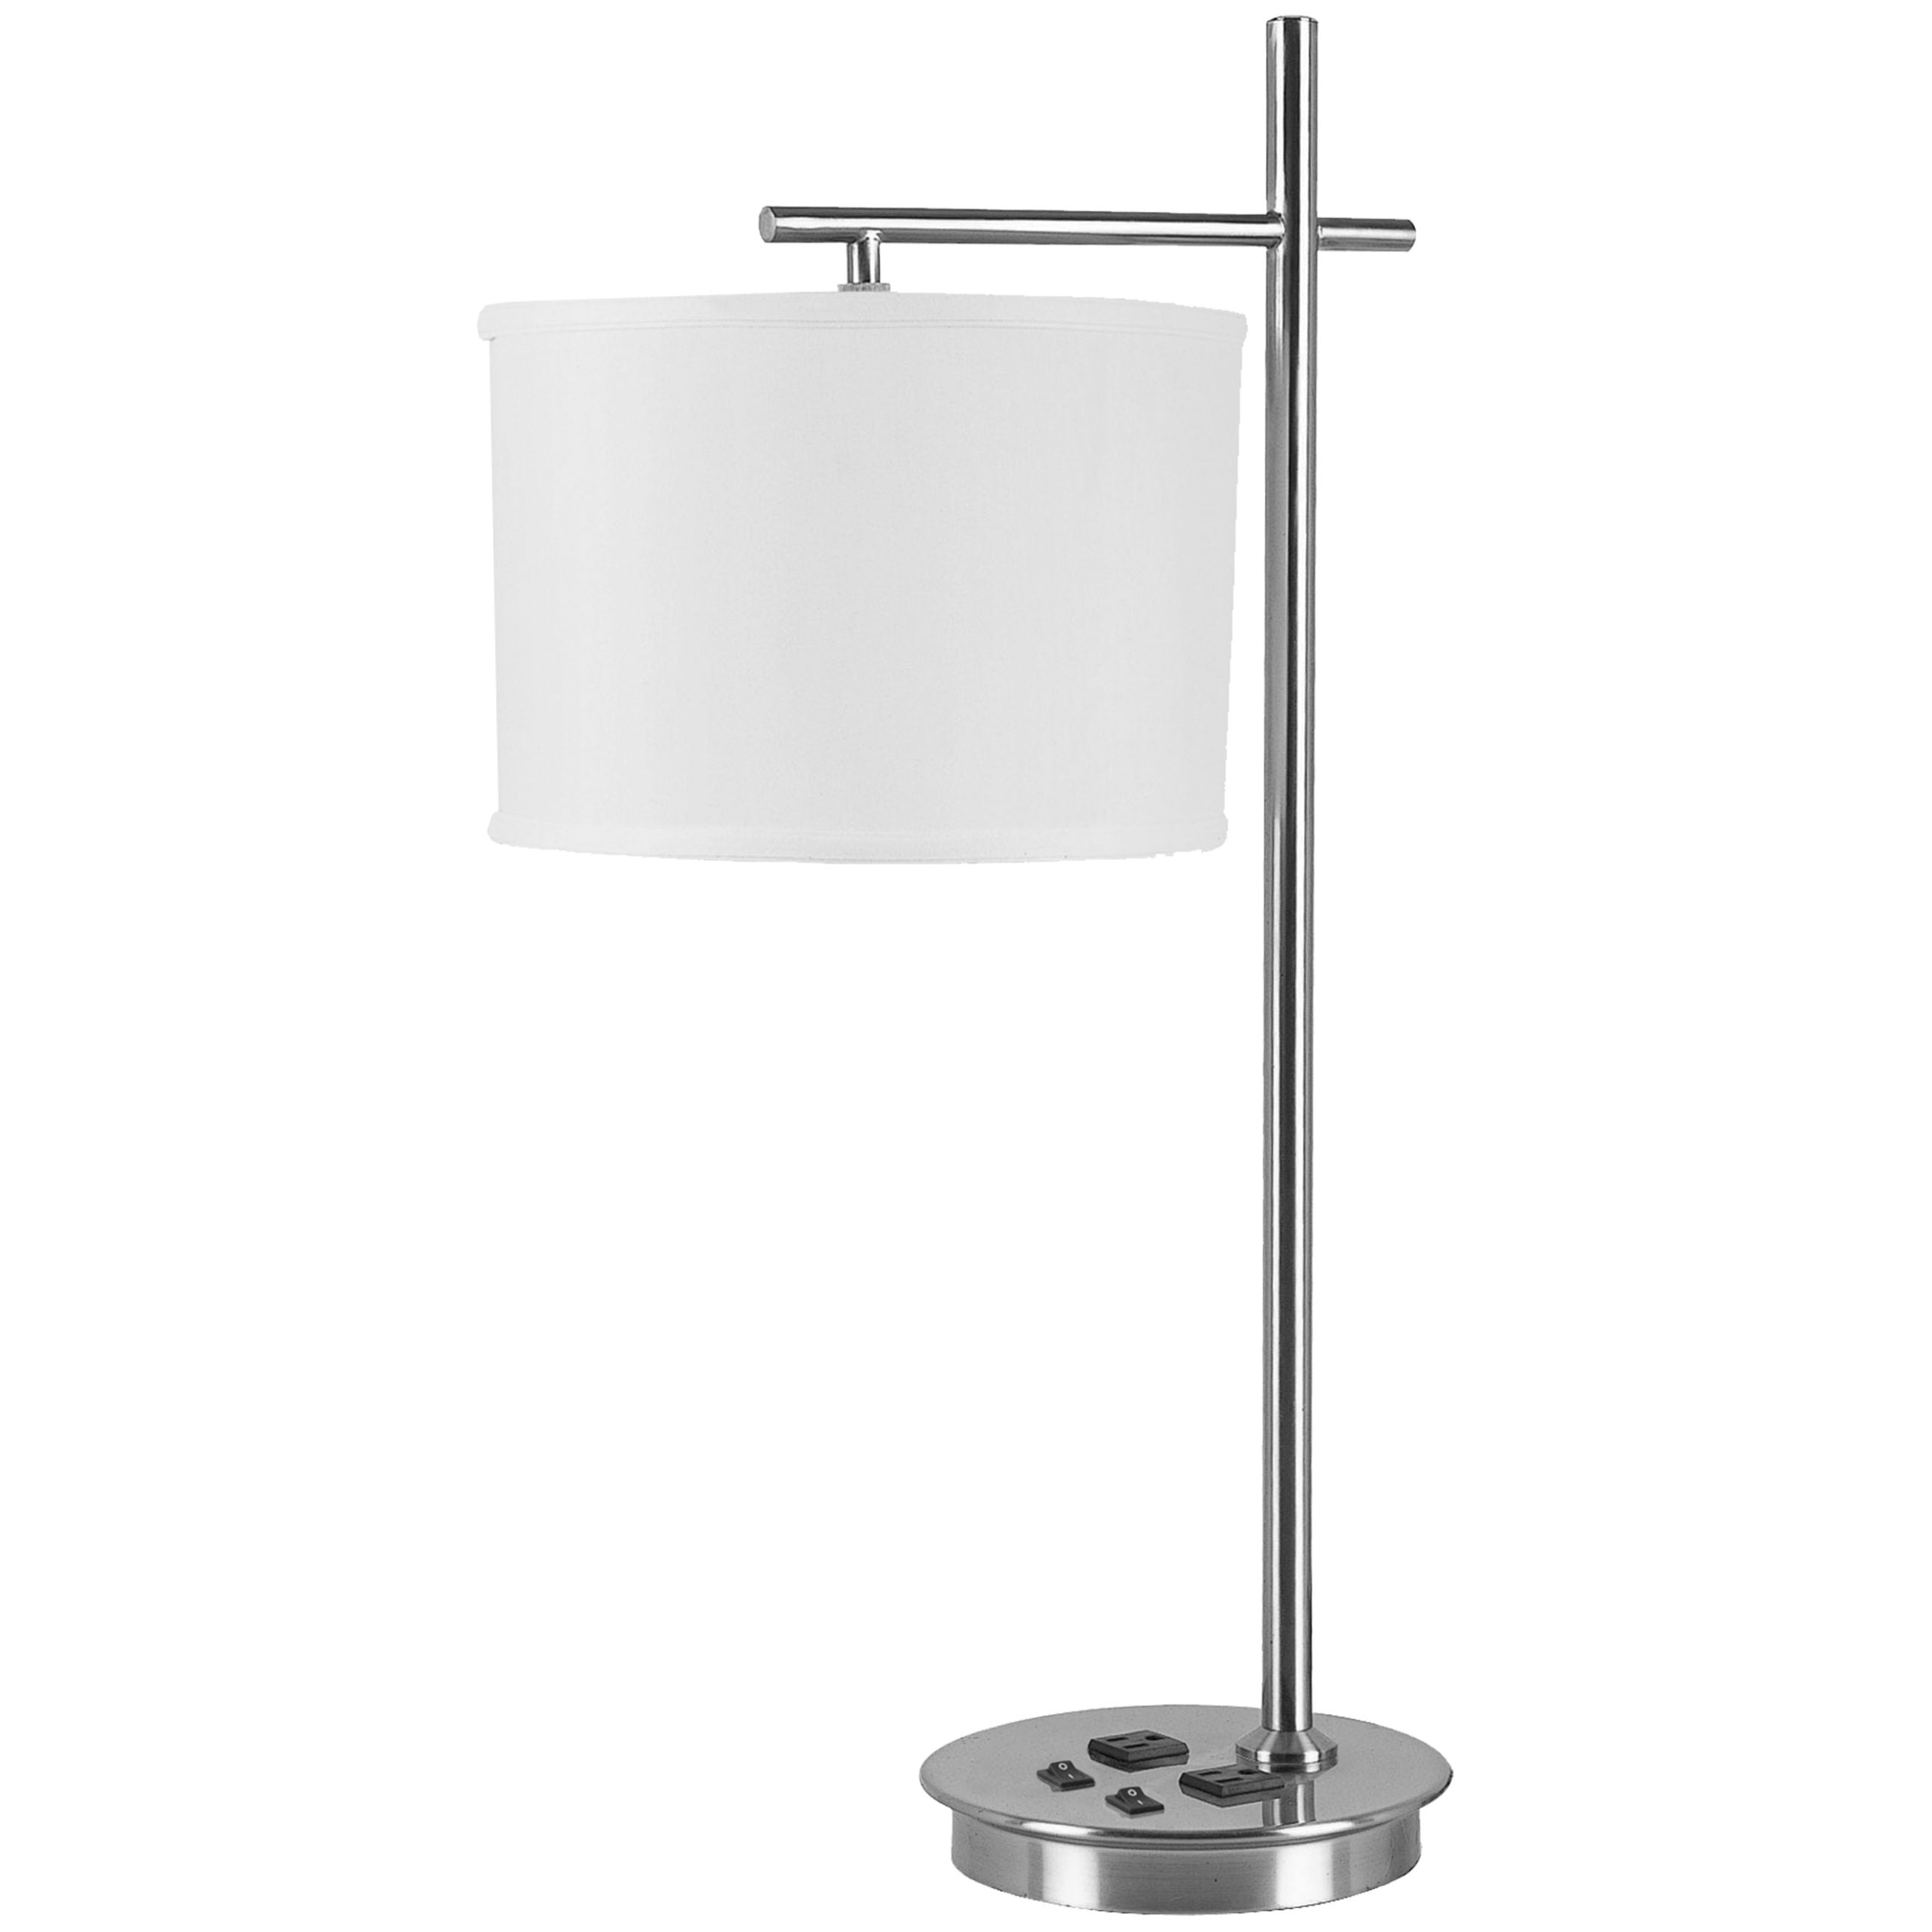 Corbel Desk Lamp with 2 Outlets